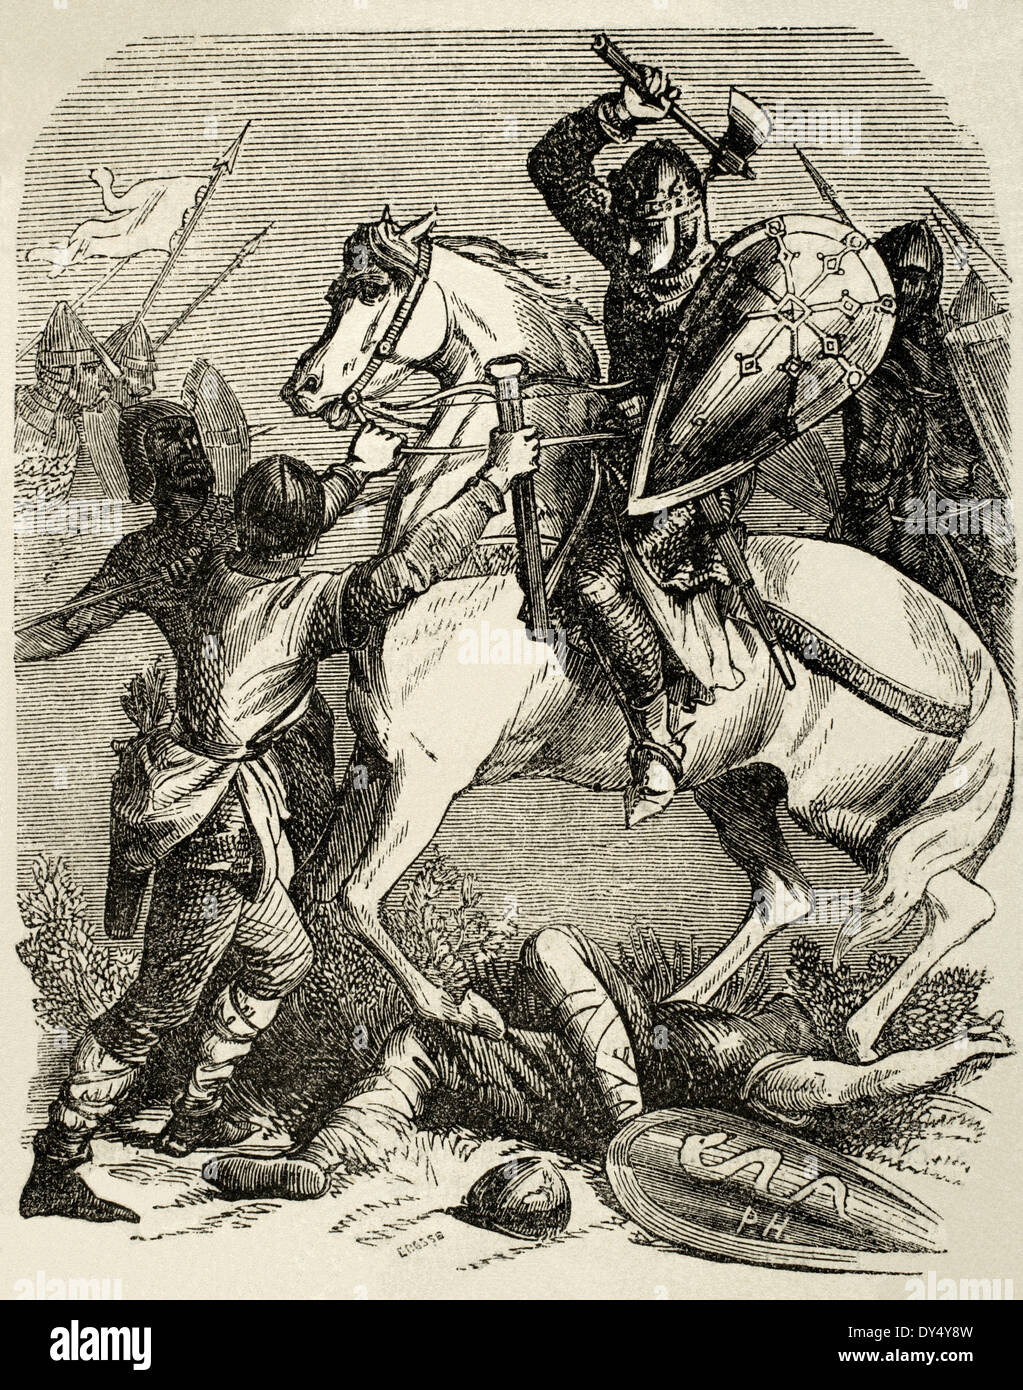 Louis VI (1081-1137). King of the Franks. Louis VI the Fat in the Battle of Brenneville, 1119. Engraving. - Stock Image